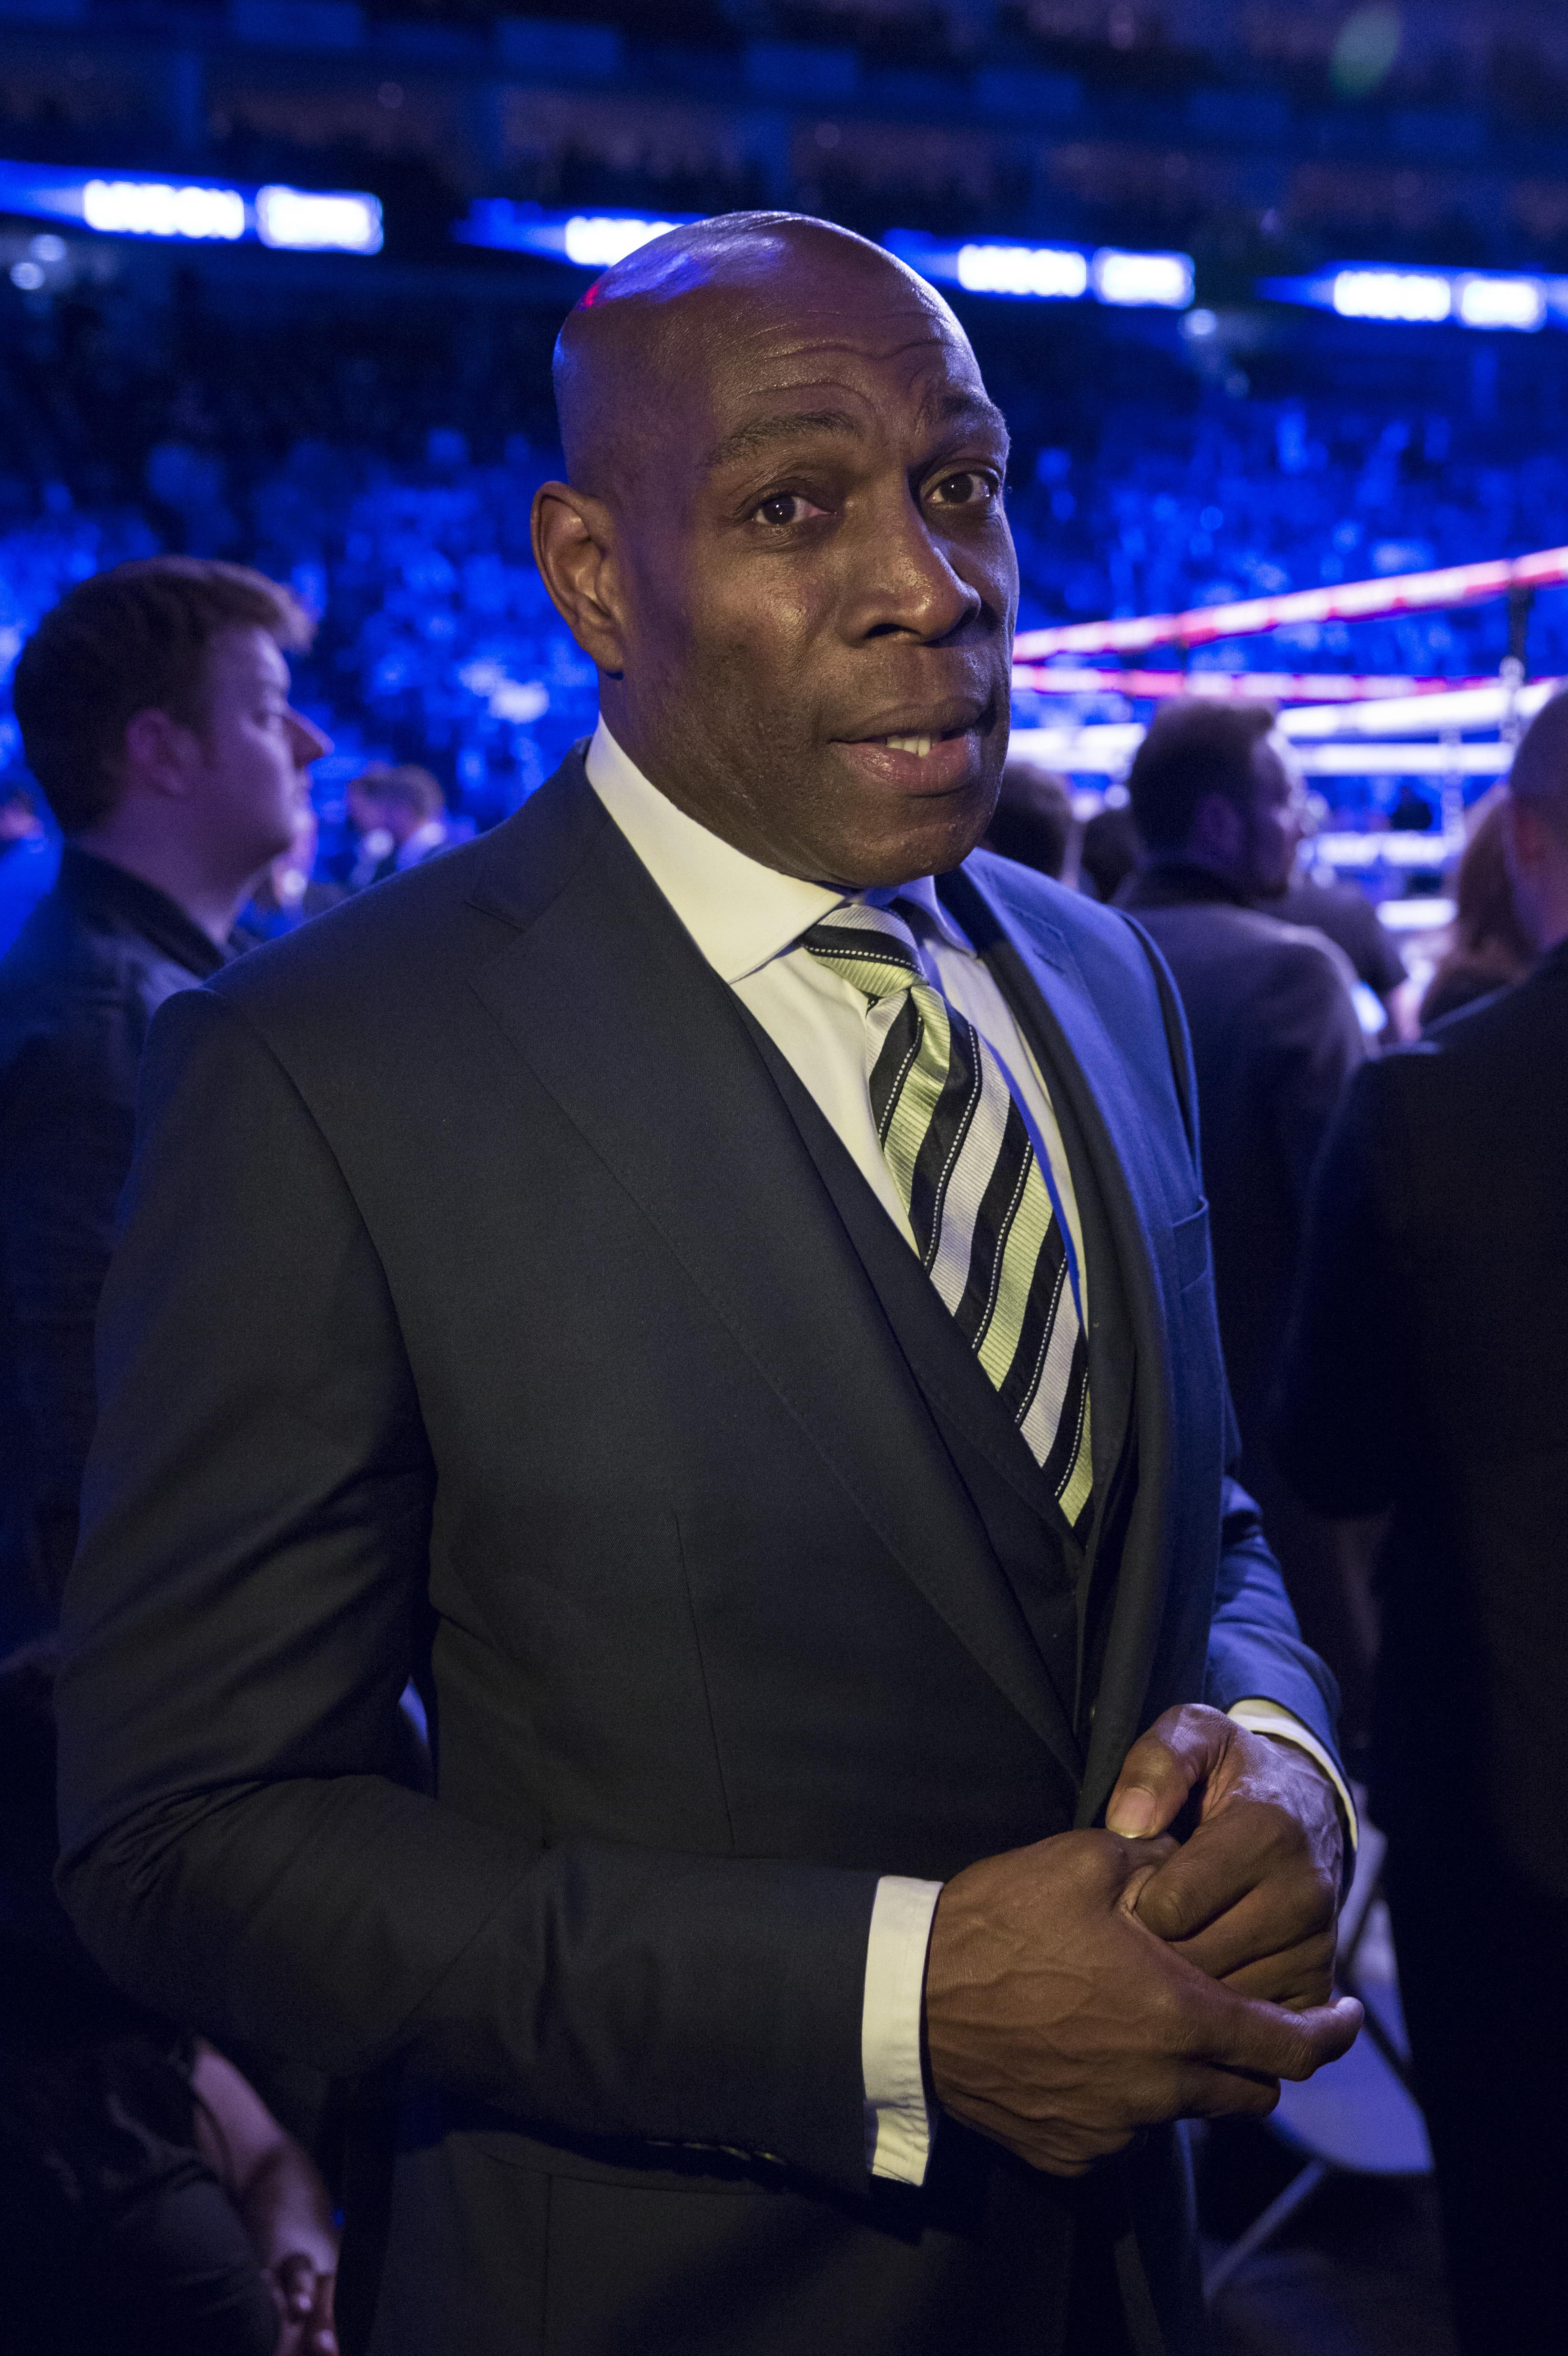 The ex-heavyweight boxer was sectioned in 2003 and twice in 2012